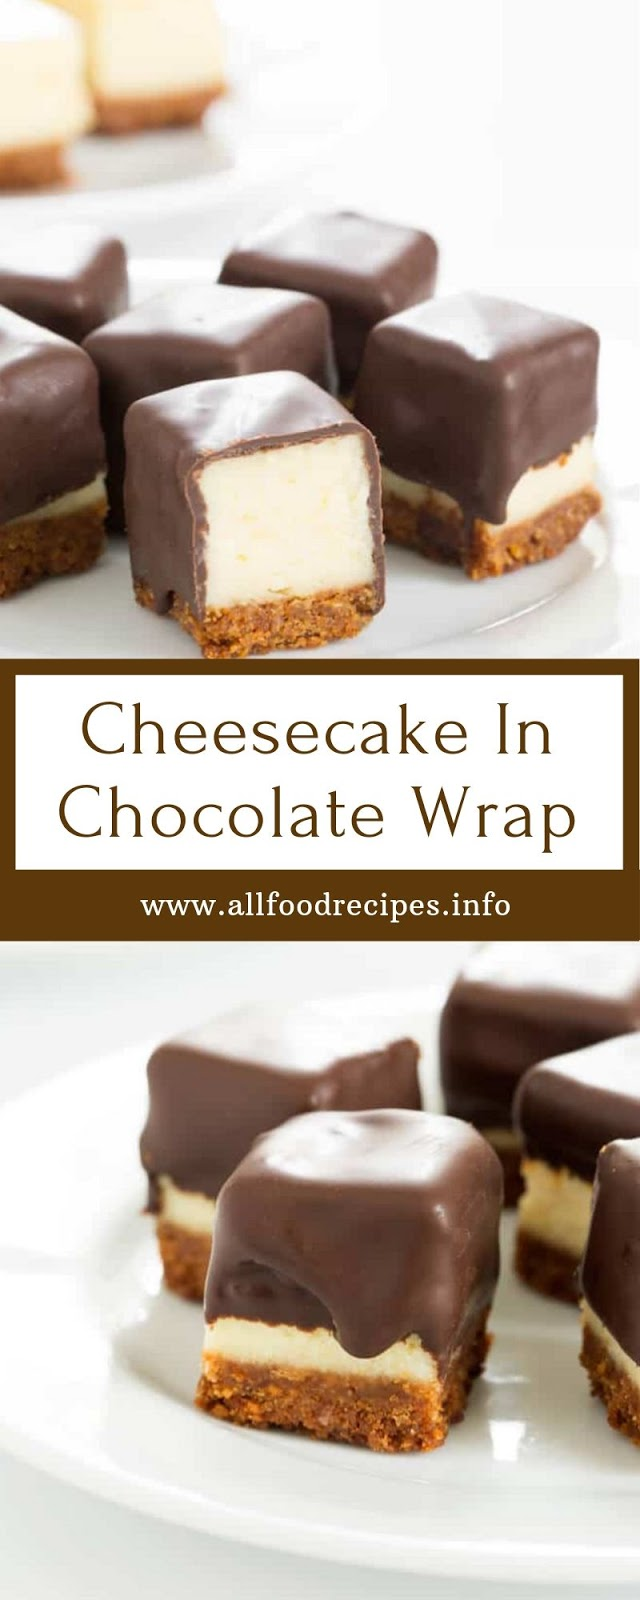 Cheesecake In Chocolate Wrap